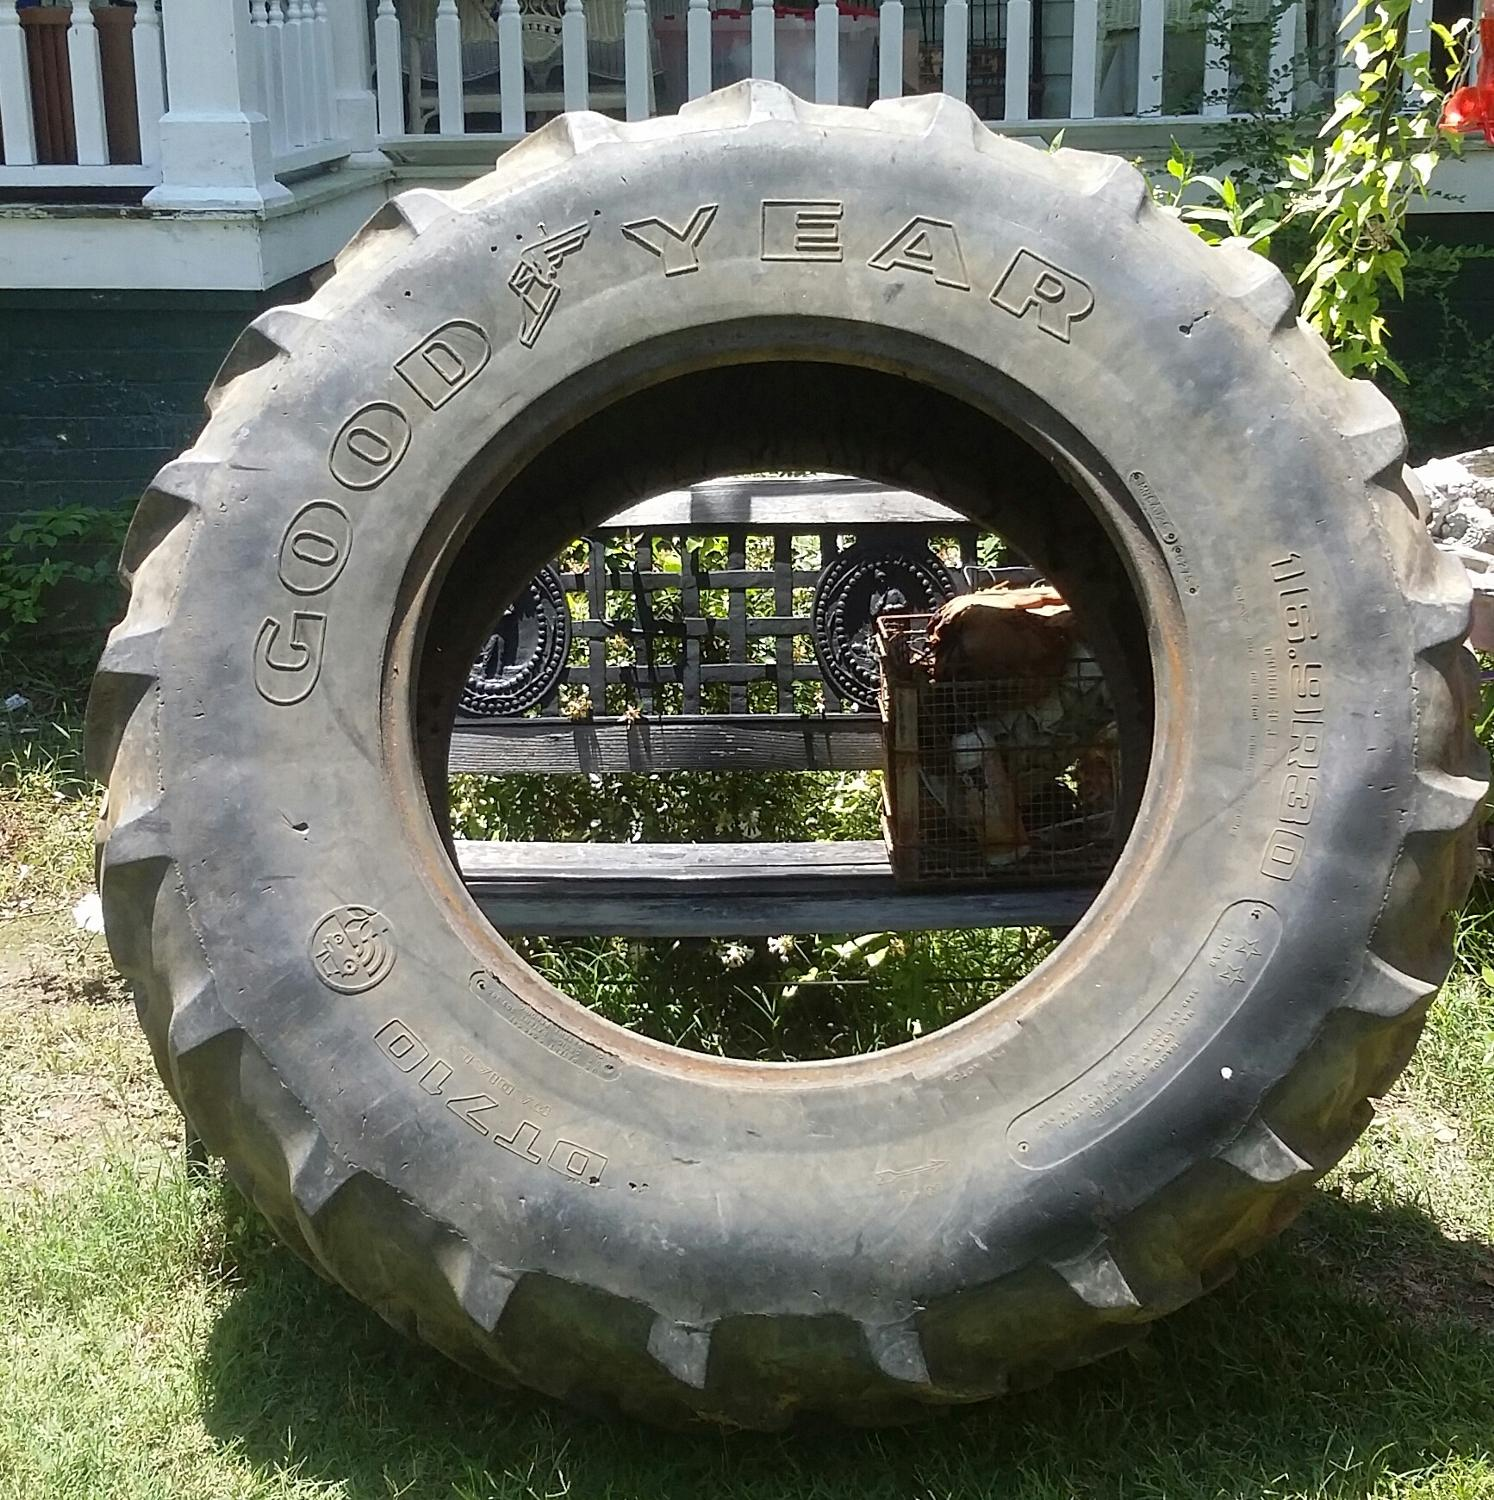 Used Tractor Tires For Sale >> Tractor Tire Used For Crossfit